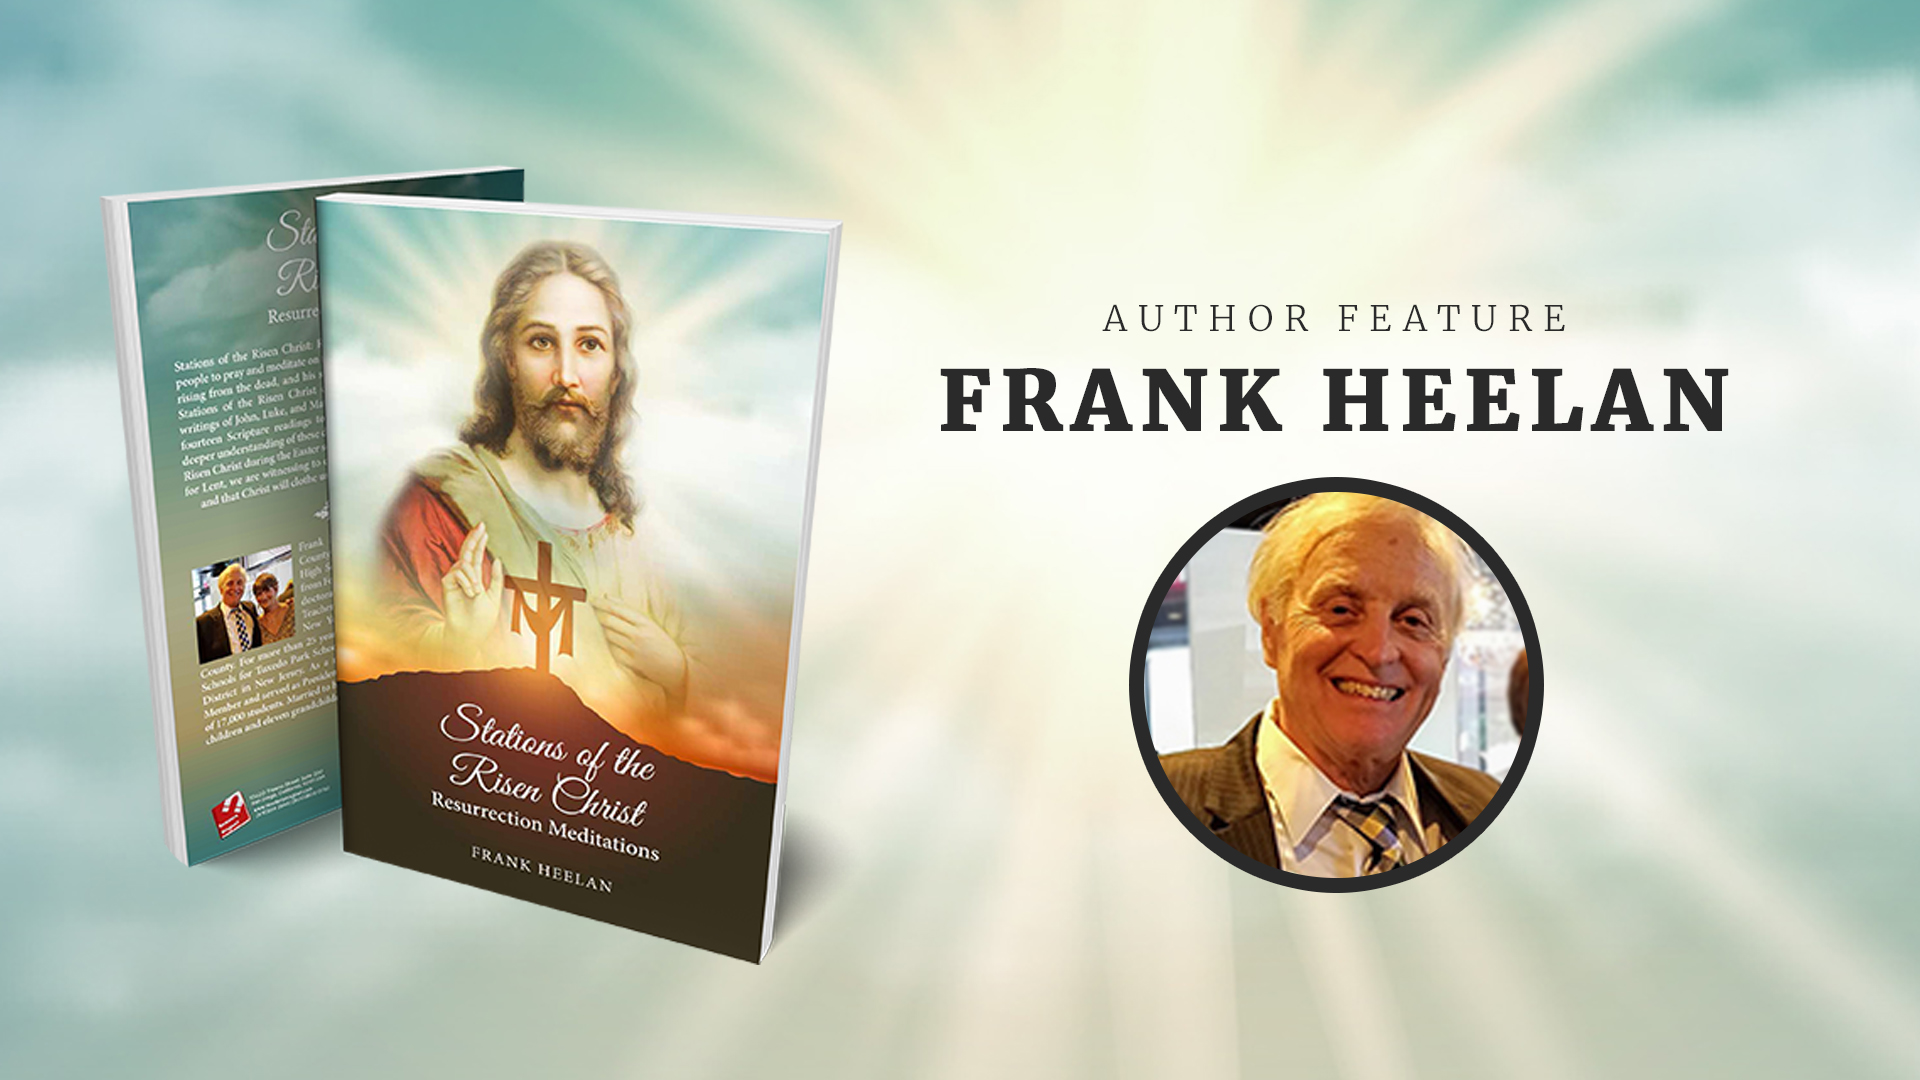 Frank Heelan picture + book cover